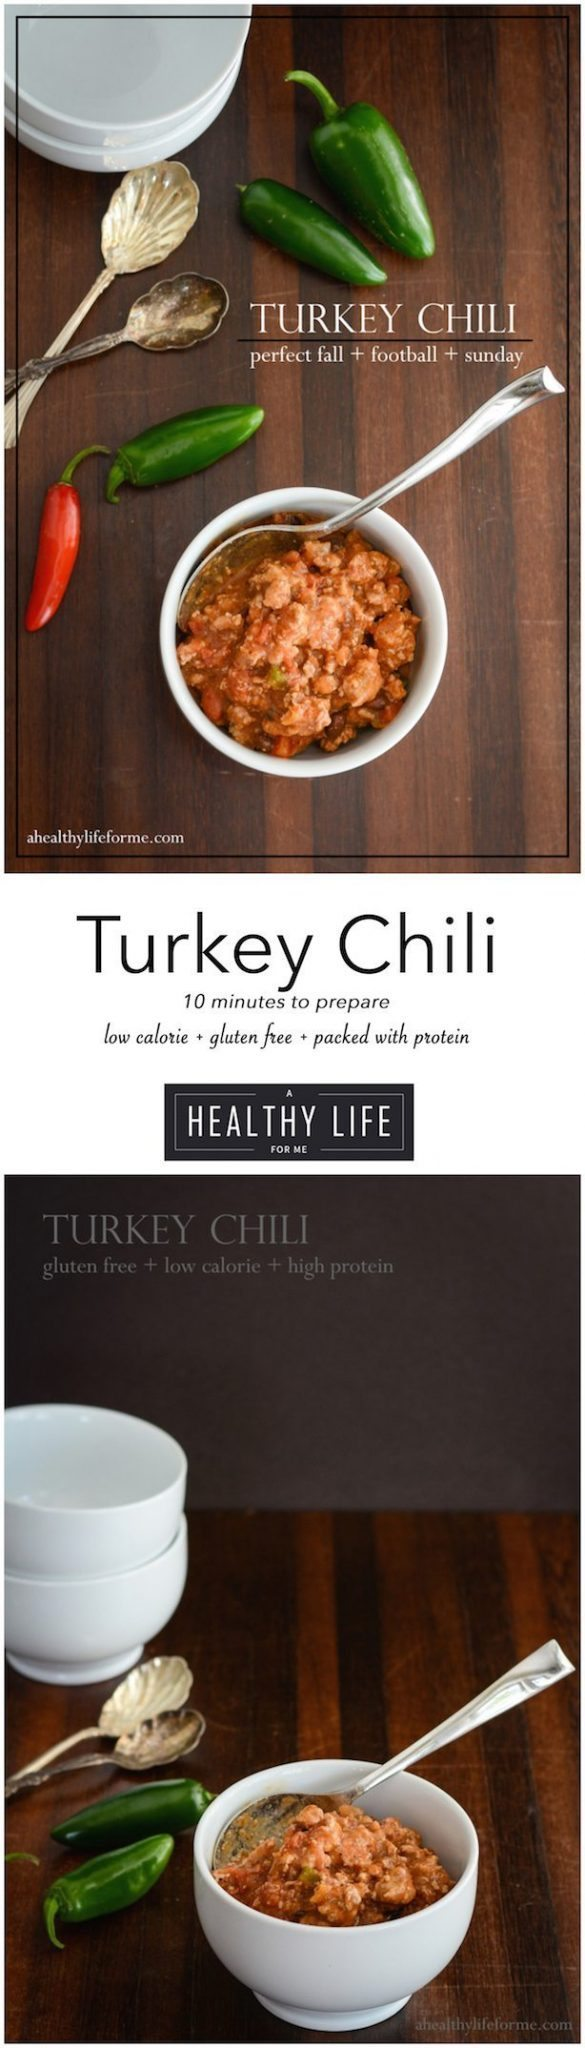 Turkey Chili Recipe Gluten Free | ahealthylifeforme.com